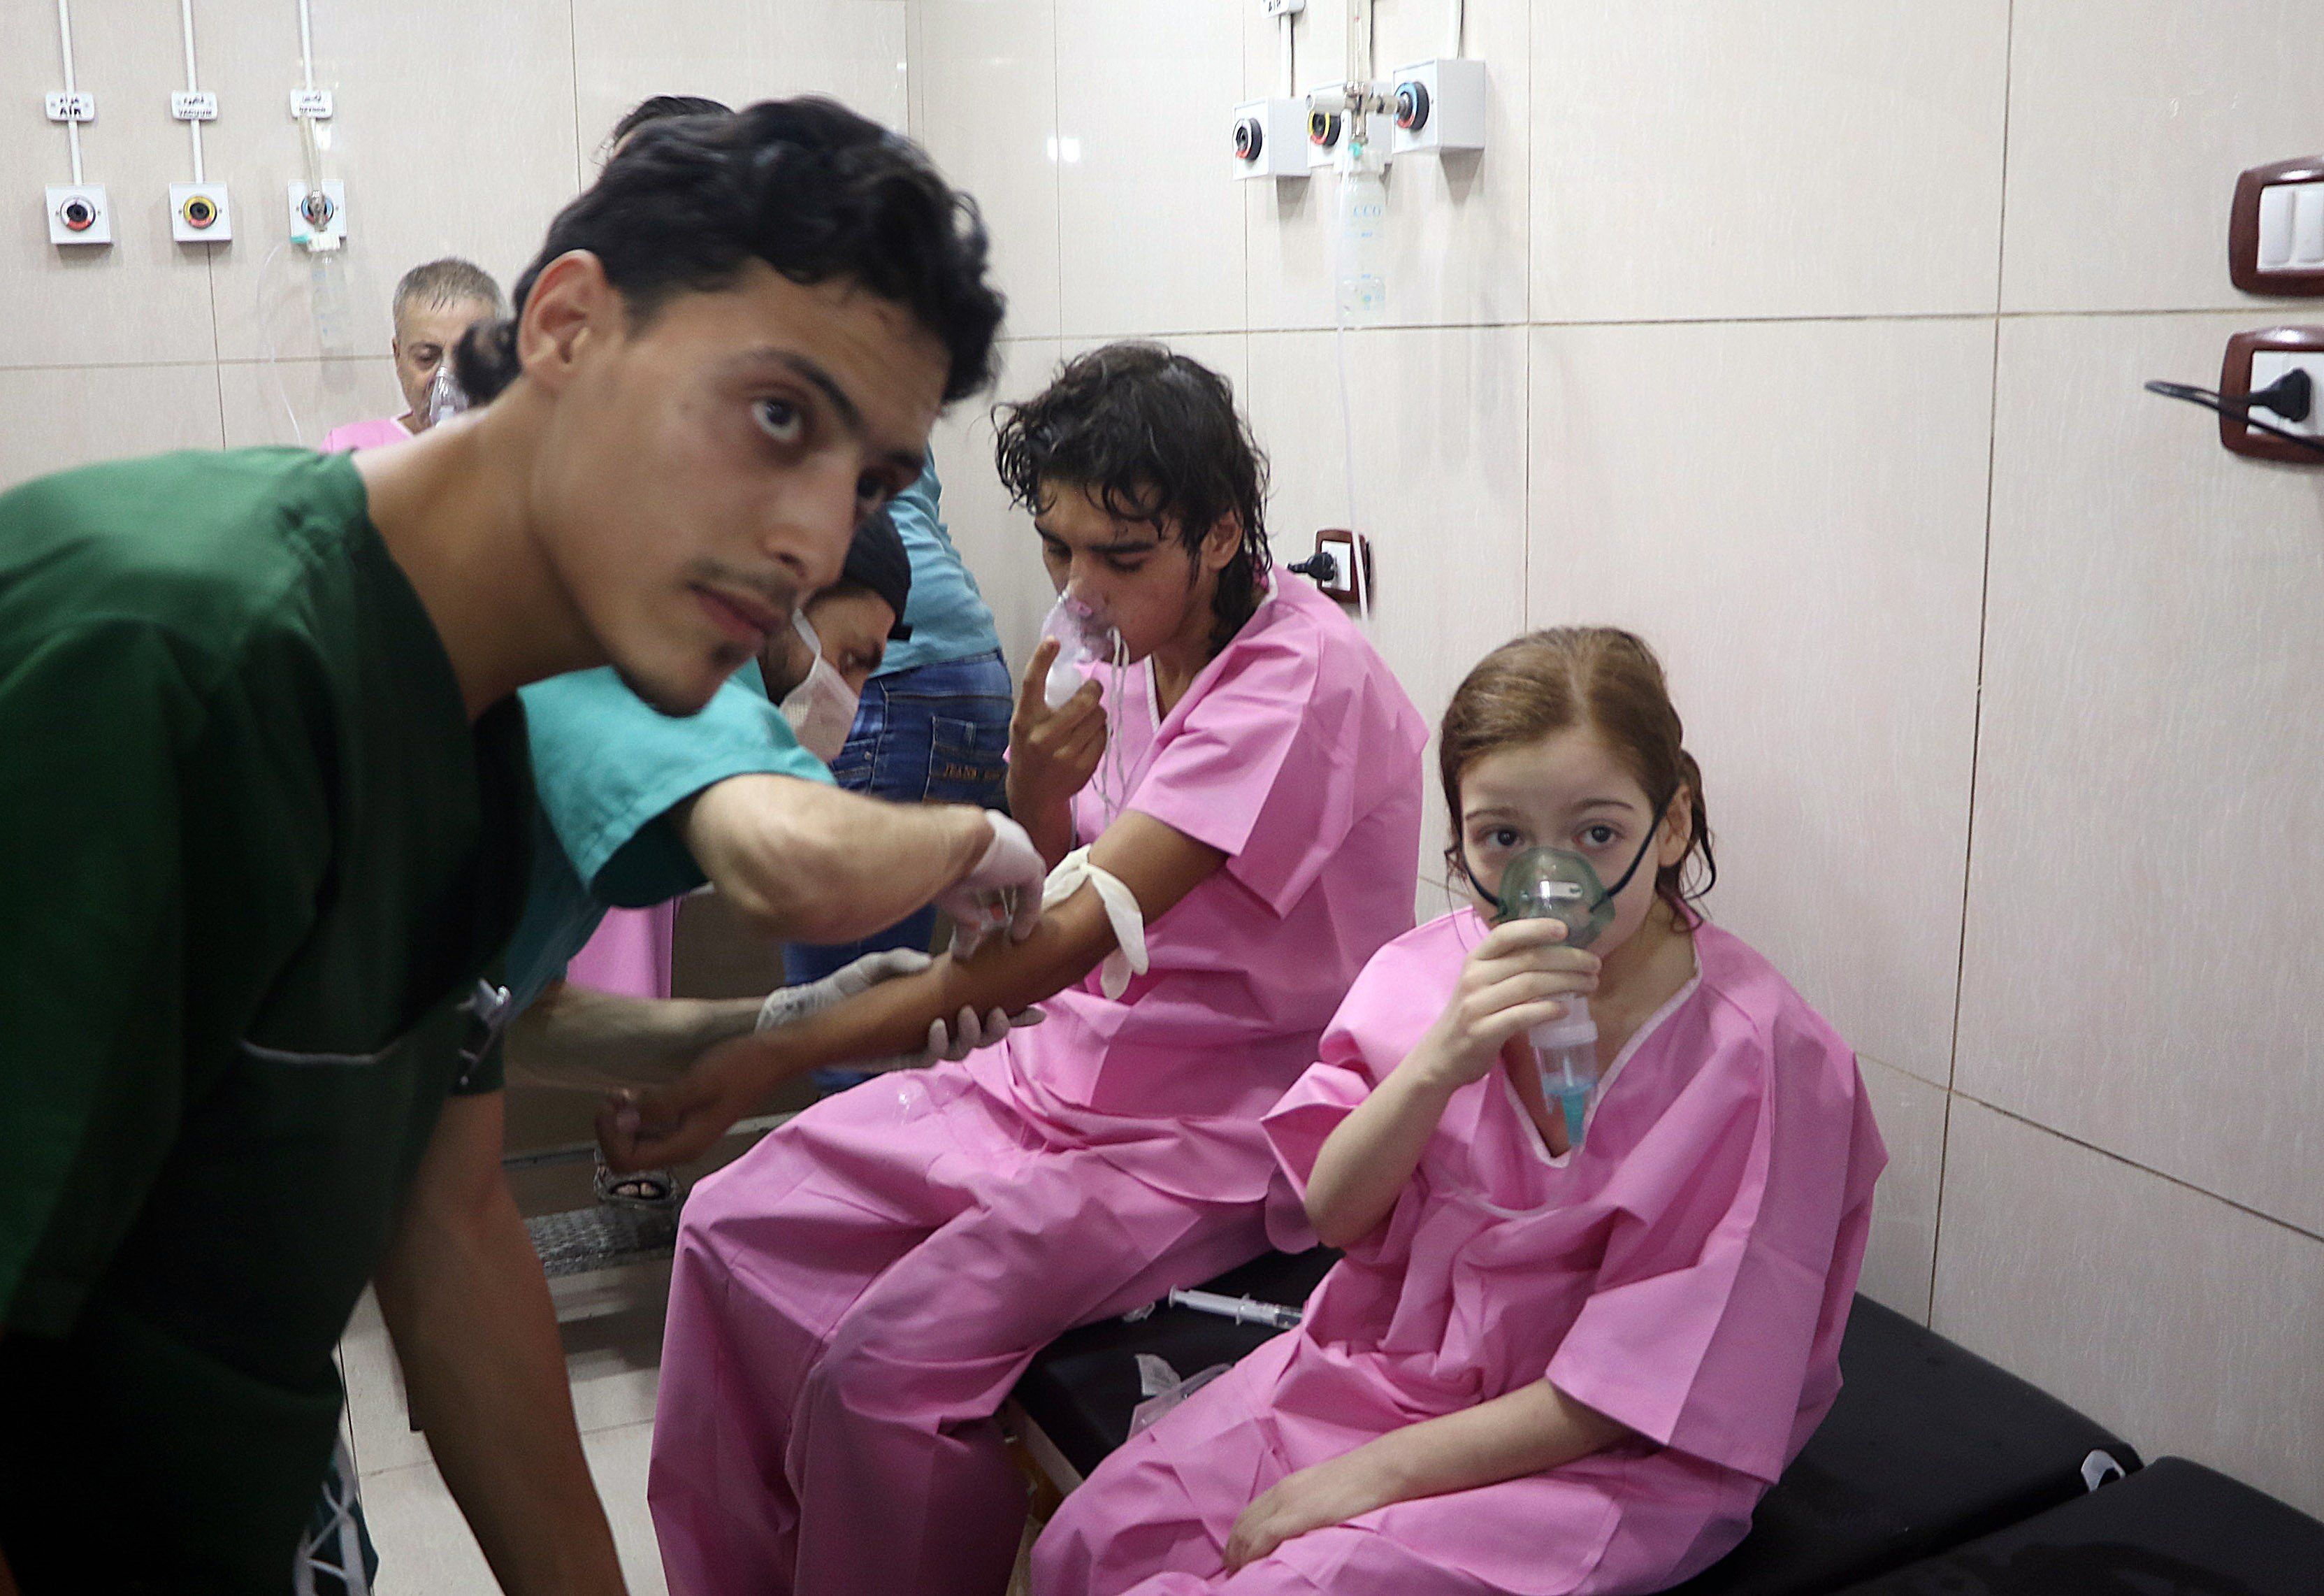 ALEPPO, SYRIA - SEPTEMBER 6: Civilians receive medical treatment at Sahara Hospital after a helicopter belonging to the Assad regime forces carried out a barrel bomb attack over residential areas at opposition controlled Sukkeri region of Aleppo, Syria on September 6, 2016. According to the local report's claims, barrel bomb used in the attack contains chlorine war gas. (Photo by Ibrahim Ebu Leys/Anadolu Agency/Getty Images)